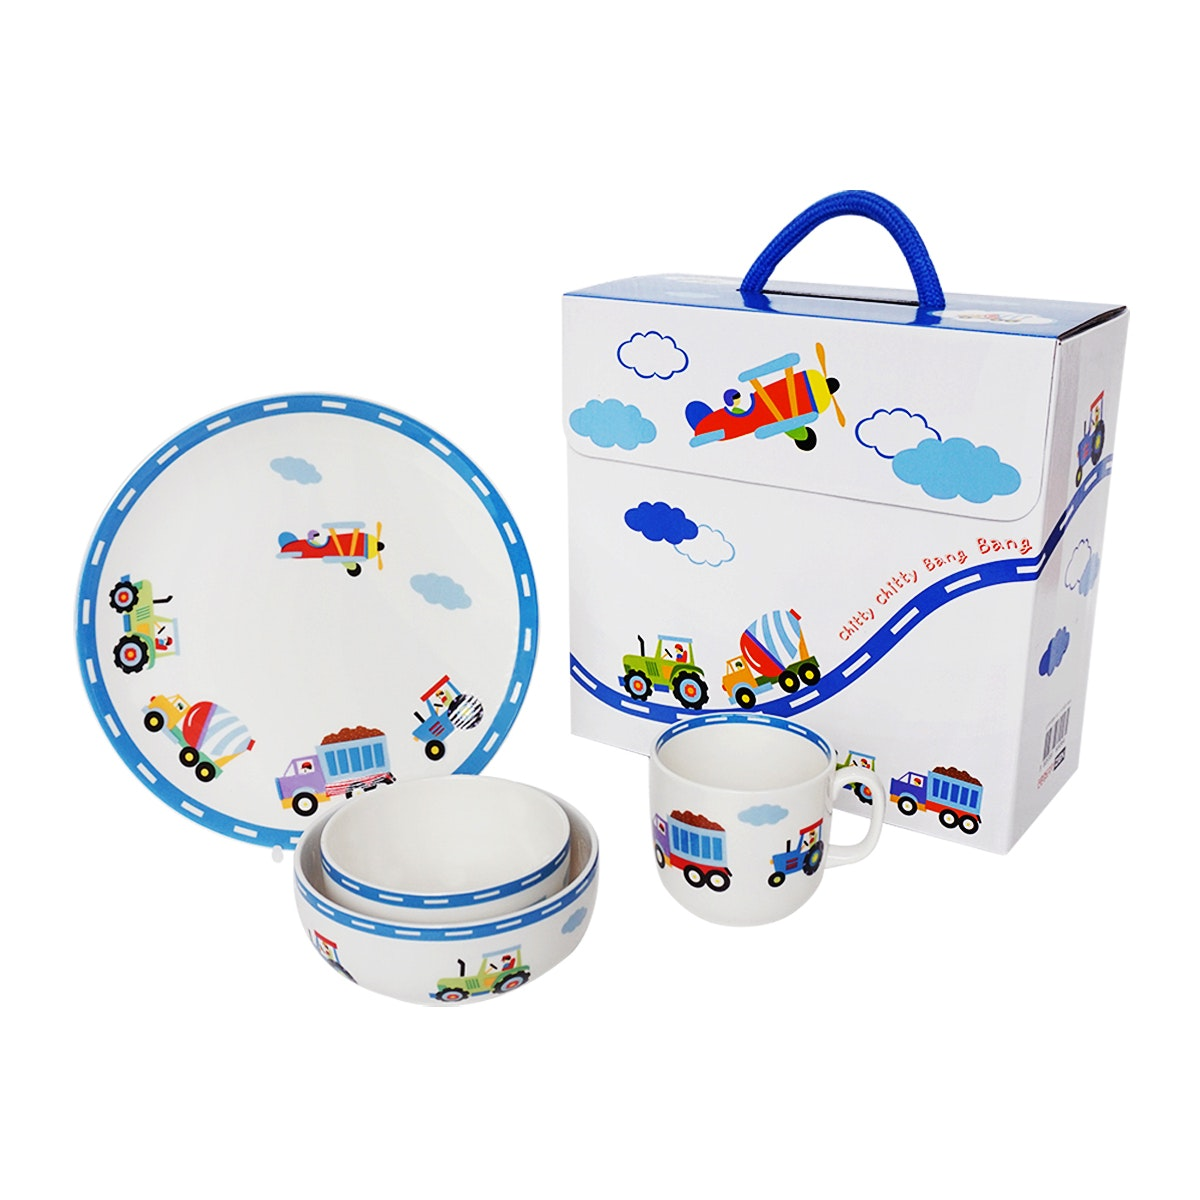 Saint James Premium Tableware Twitty Twitty Pang Pang Kid Set 4pcs